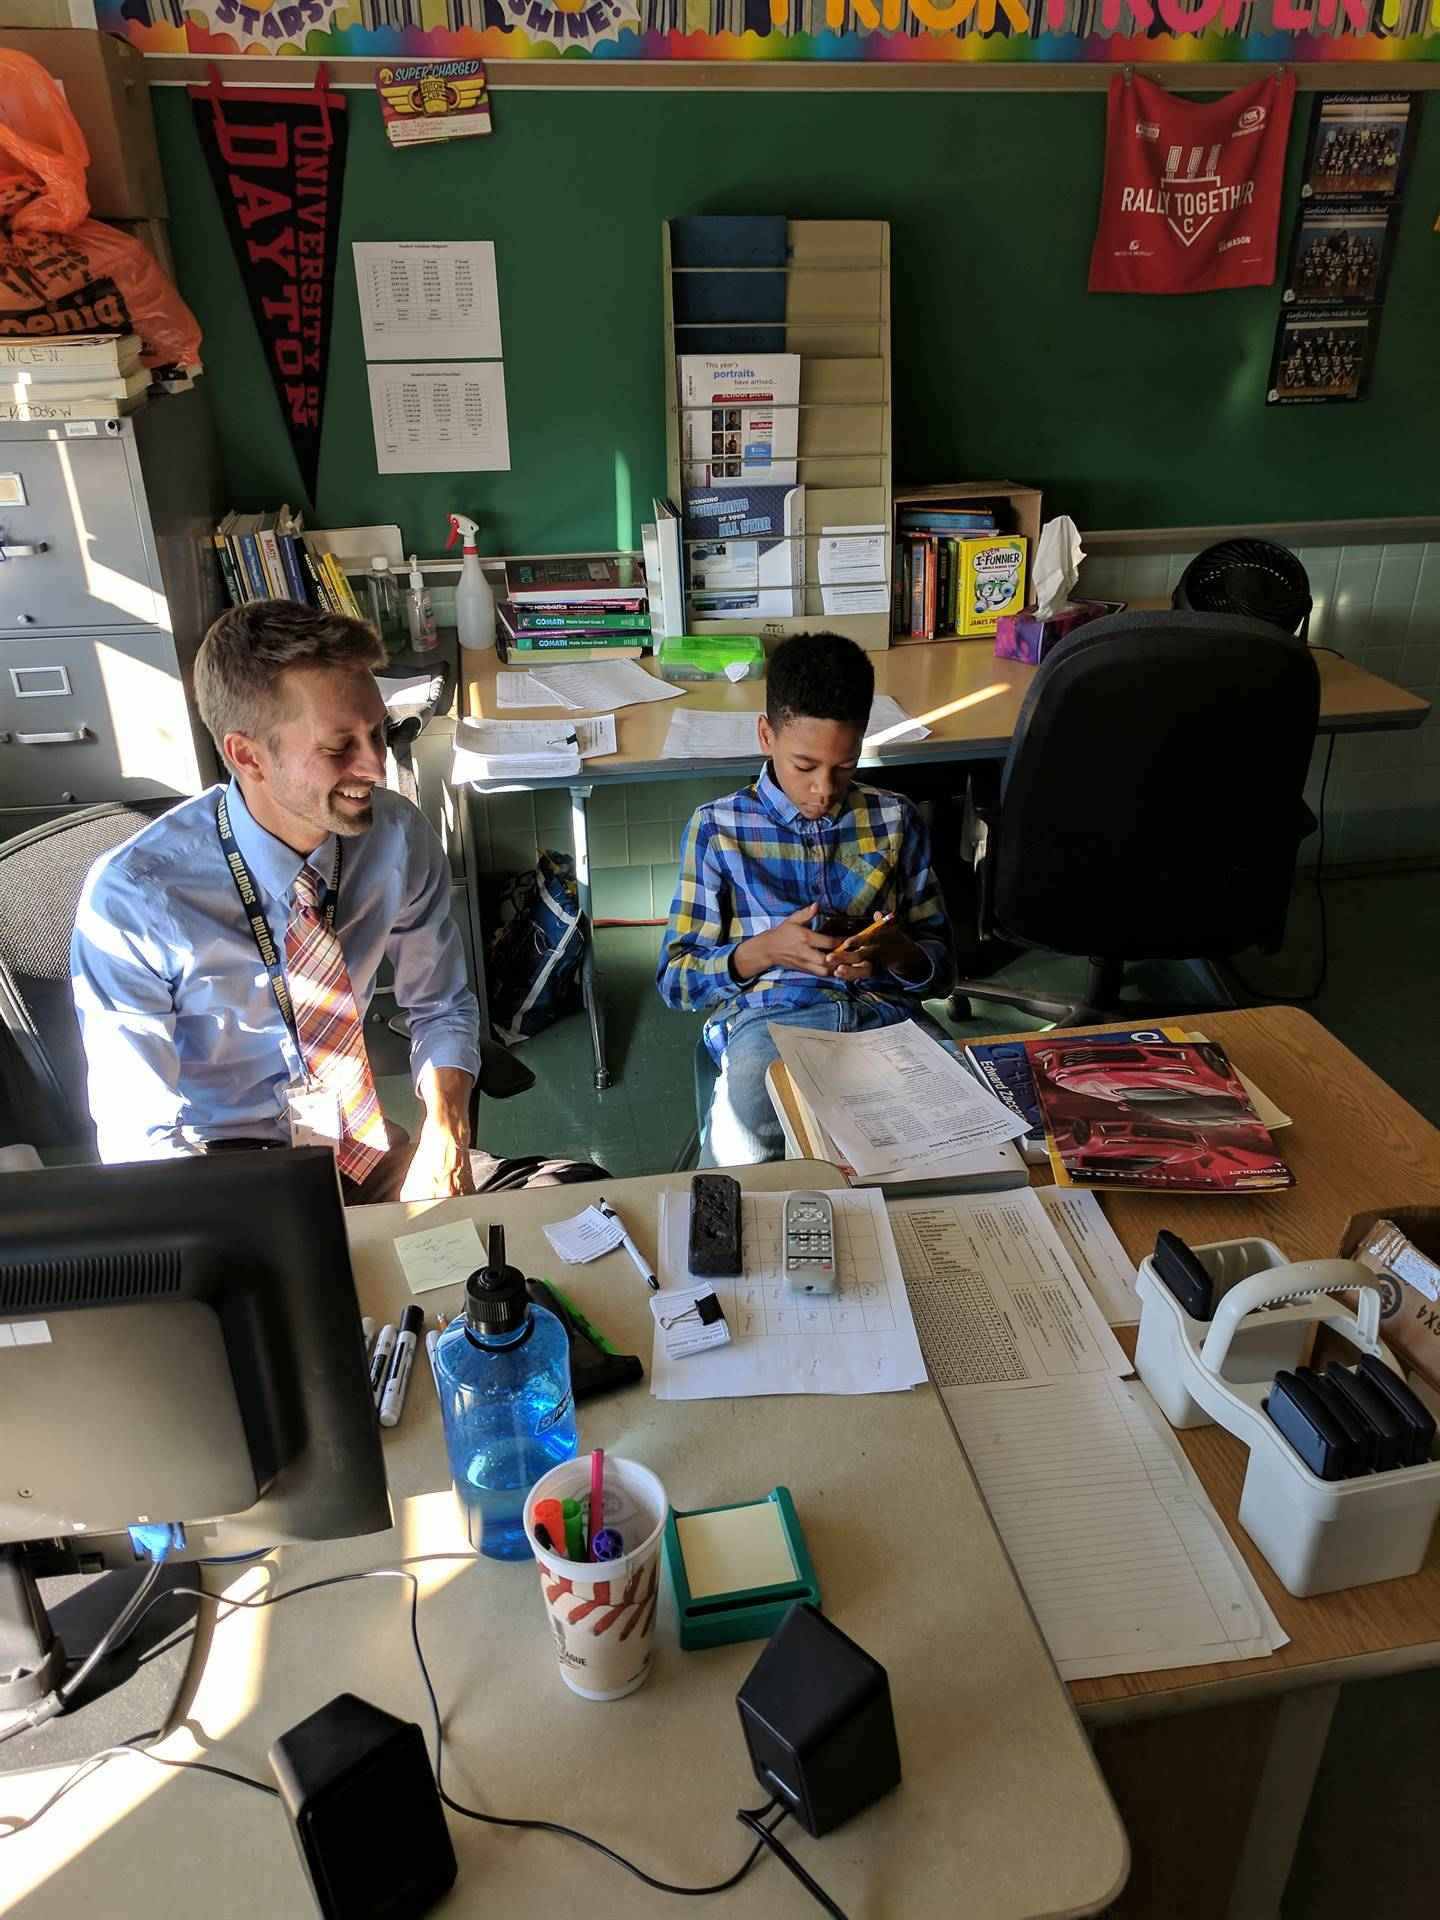 Students and staff work together during lunch to improve knowledge, skills, and study habits